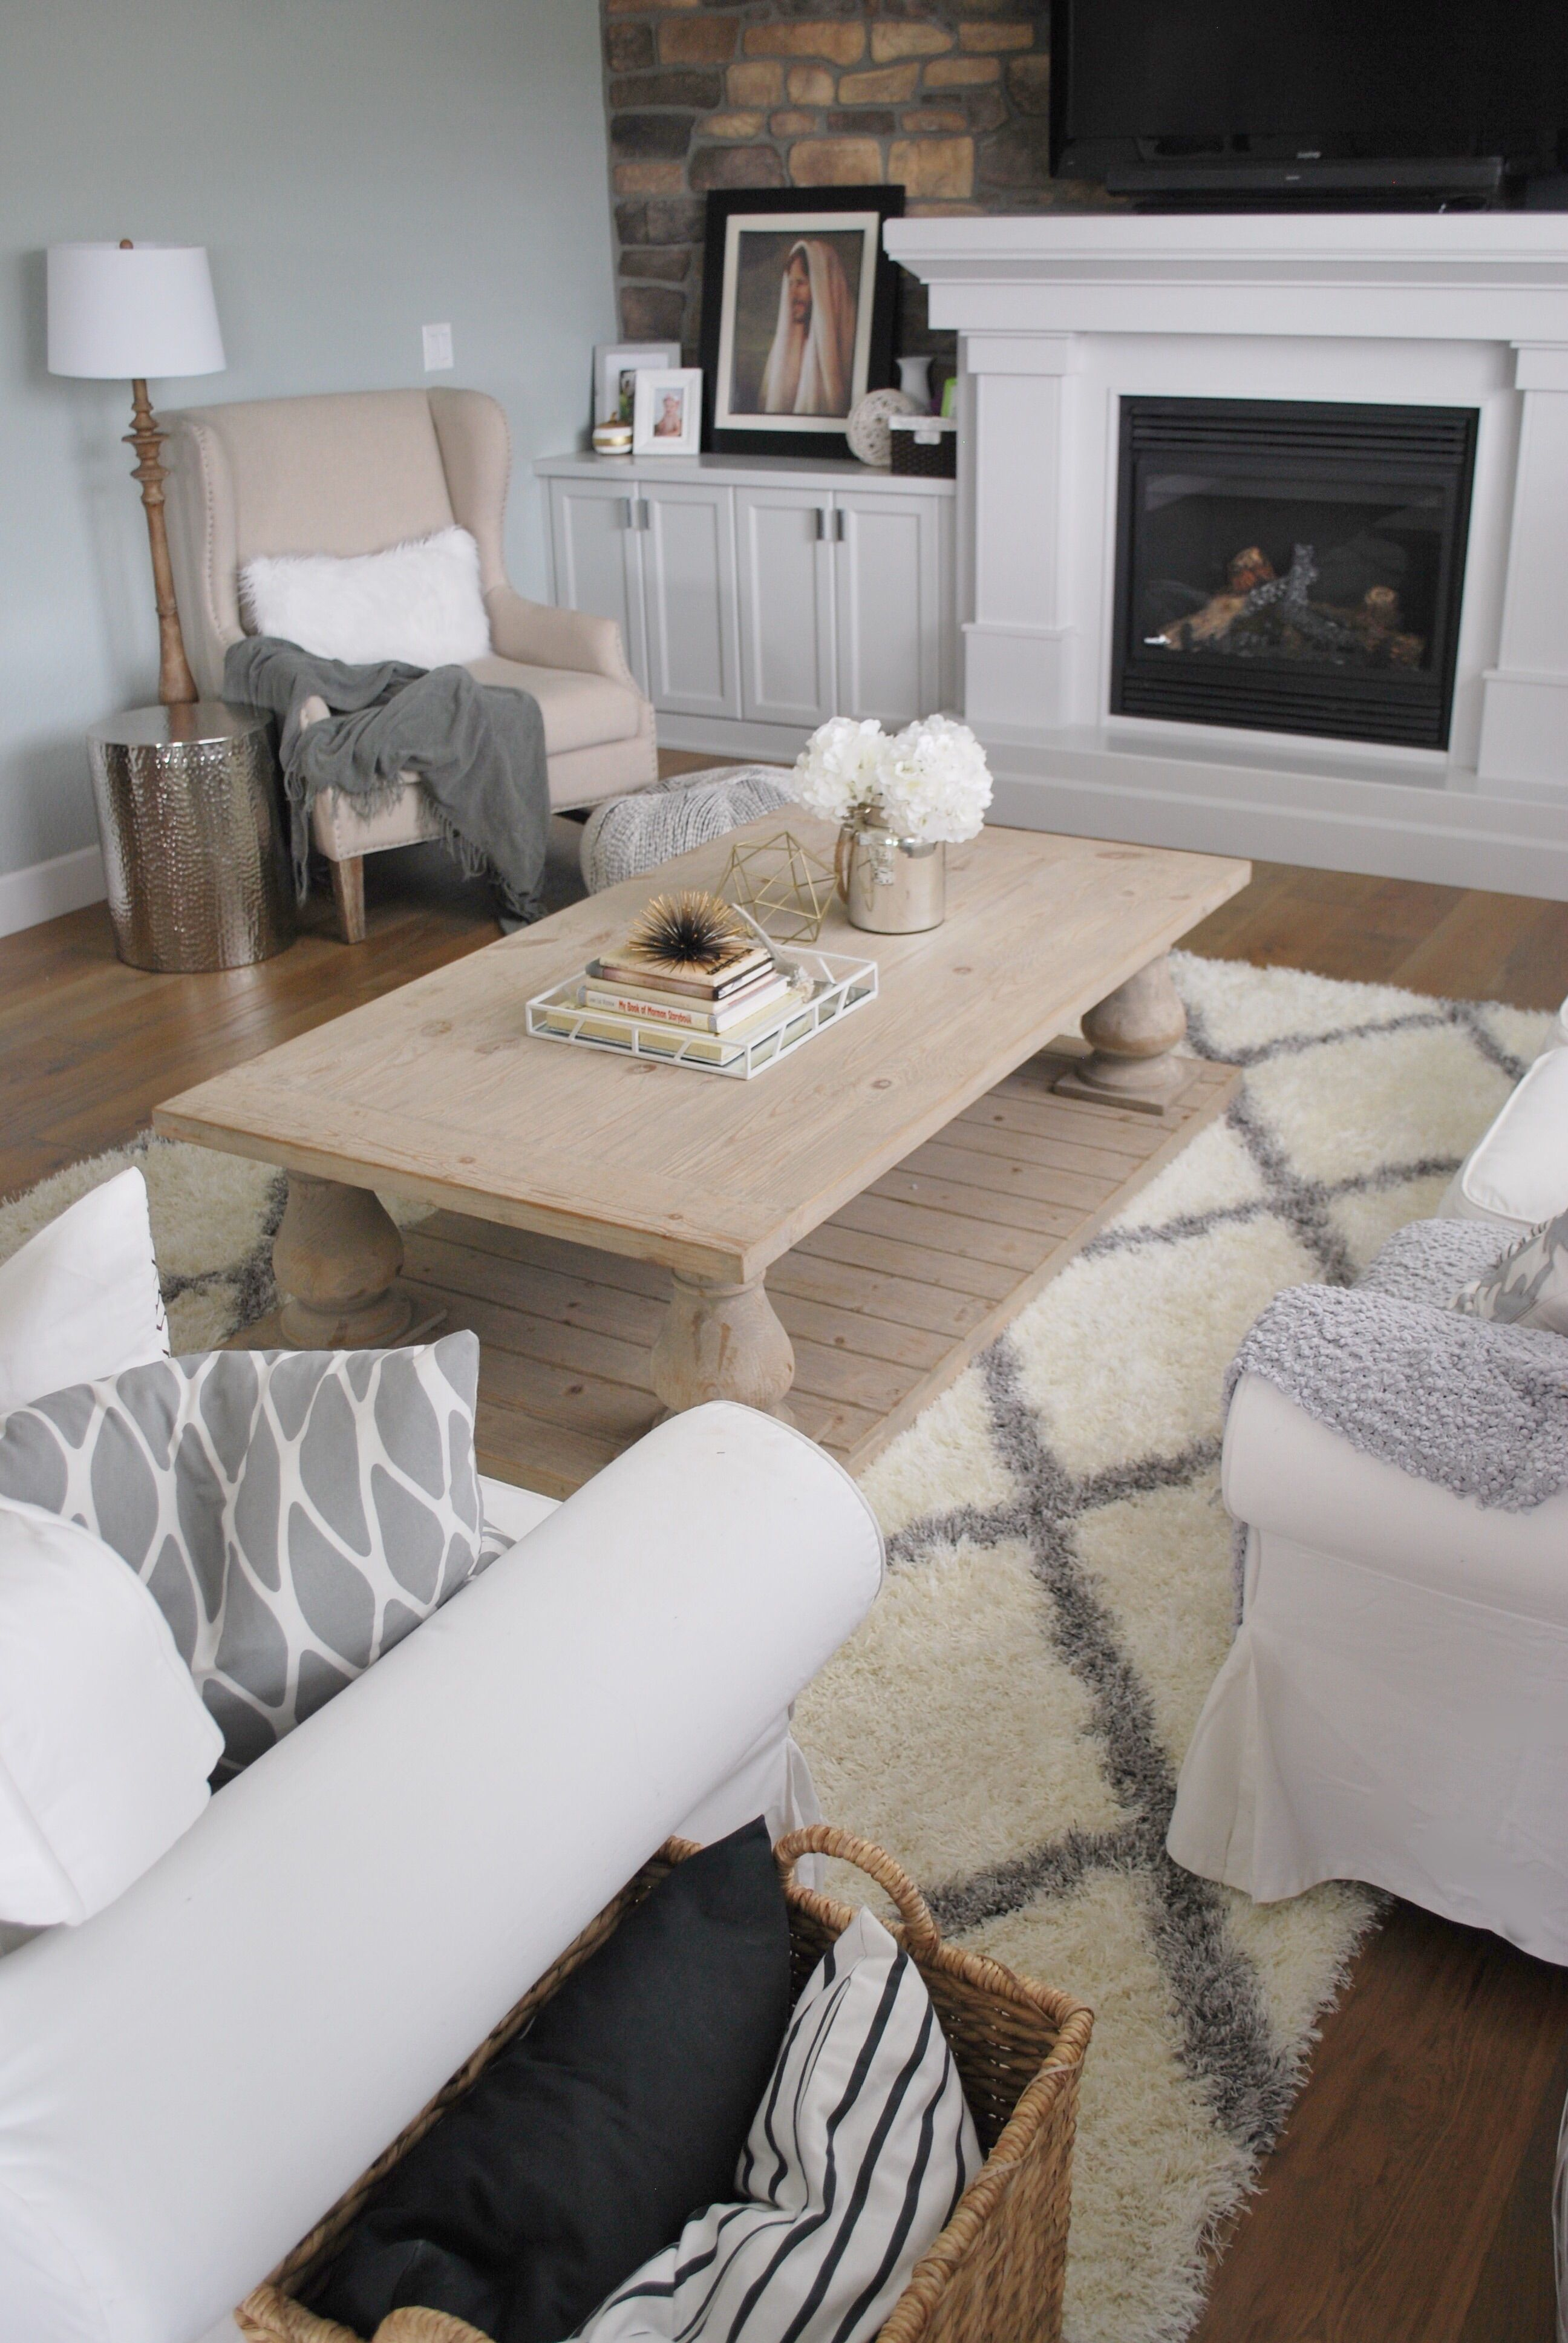 Restoration hardware look for half the price reclaimed wood restoration hardware look for half the price reclaimed wood coffee table painttheworldwhite geotapseo Image collections